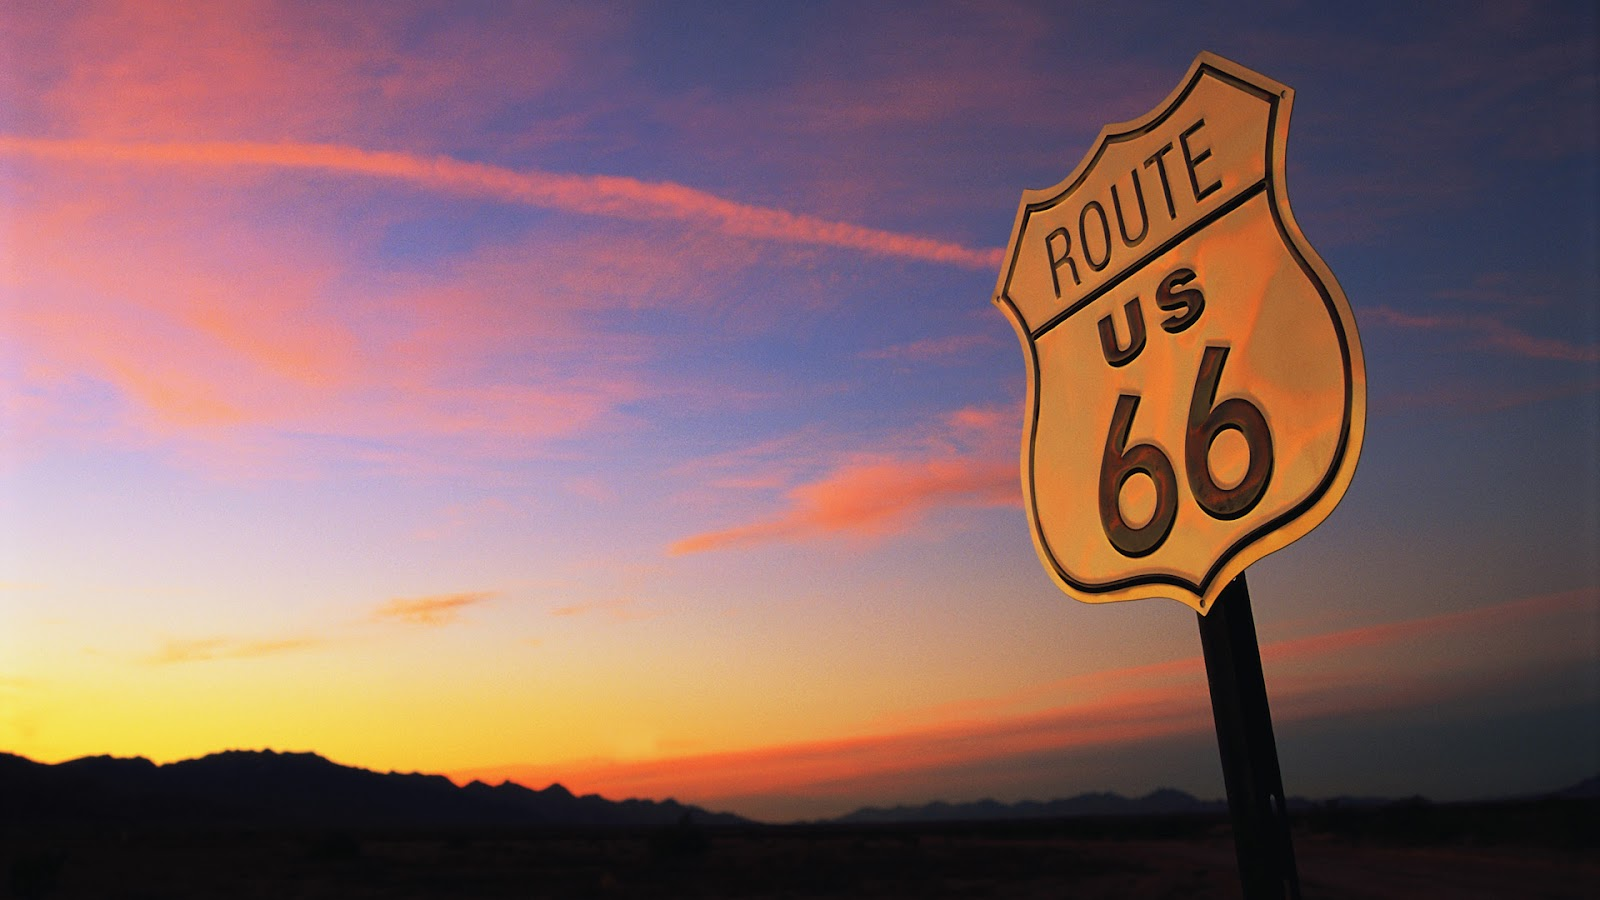 4 excellent hd route 66 wallpapers - Route 66 wallpaper 4k ...